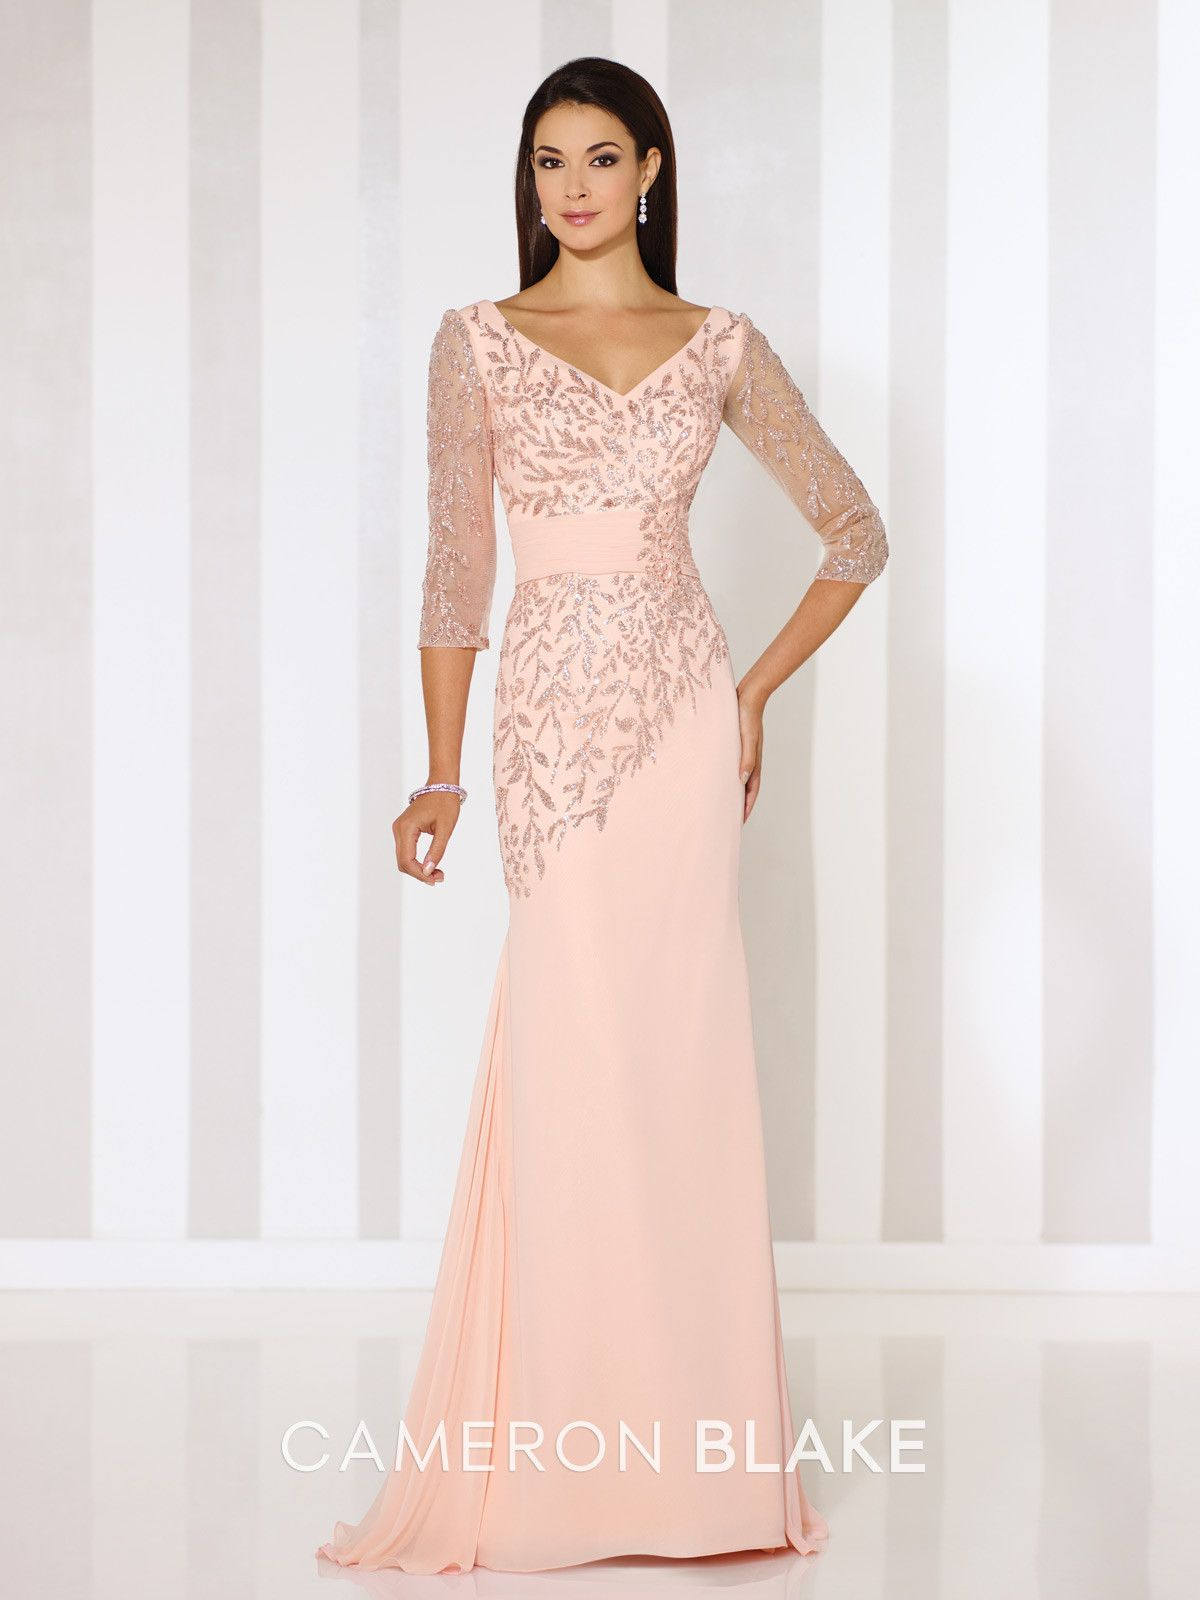 Cameron Blake - 116651 - All Dressed Up, Mother/Guest | Vestiditos